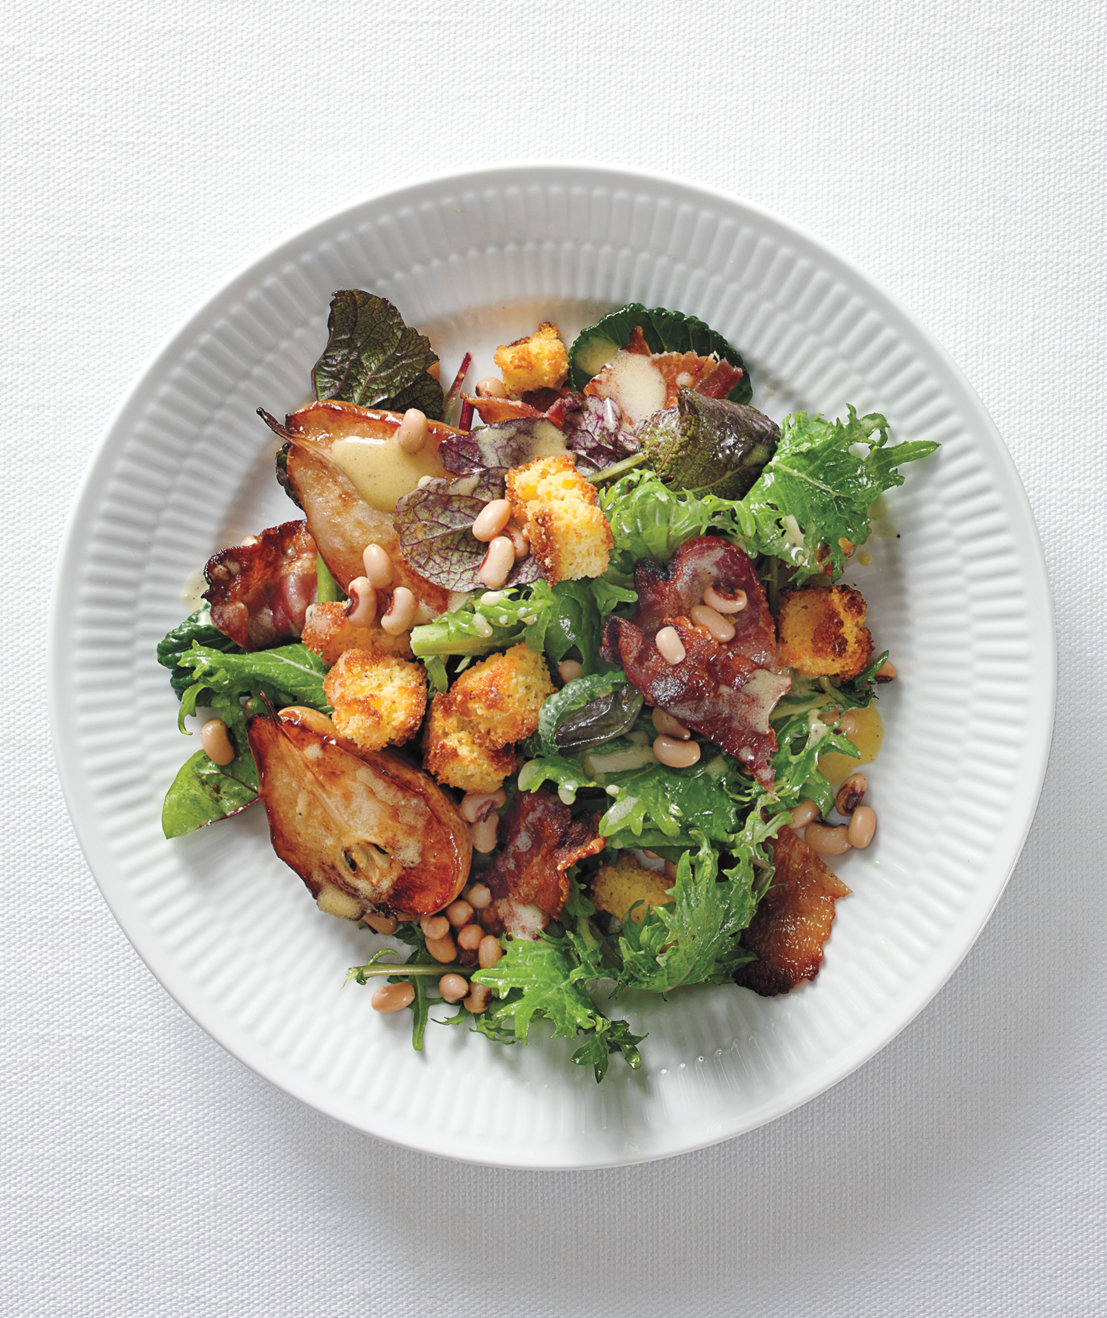 greens-bacon-salad-pears-croutons